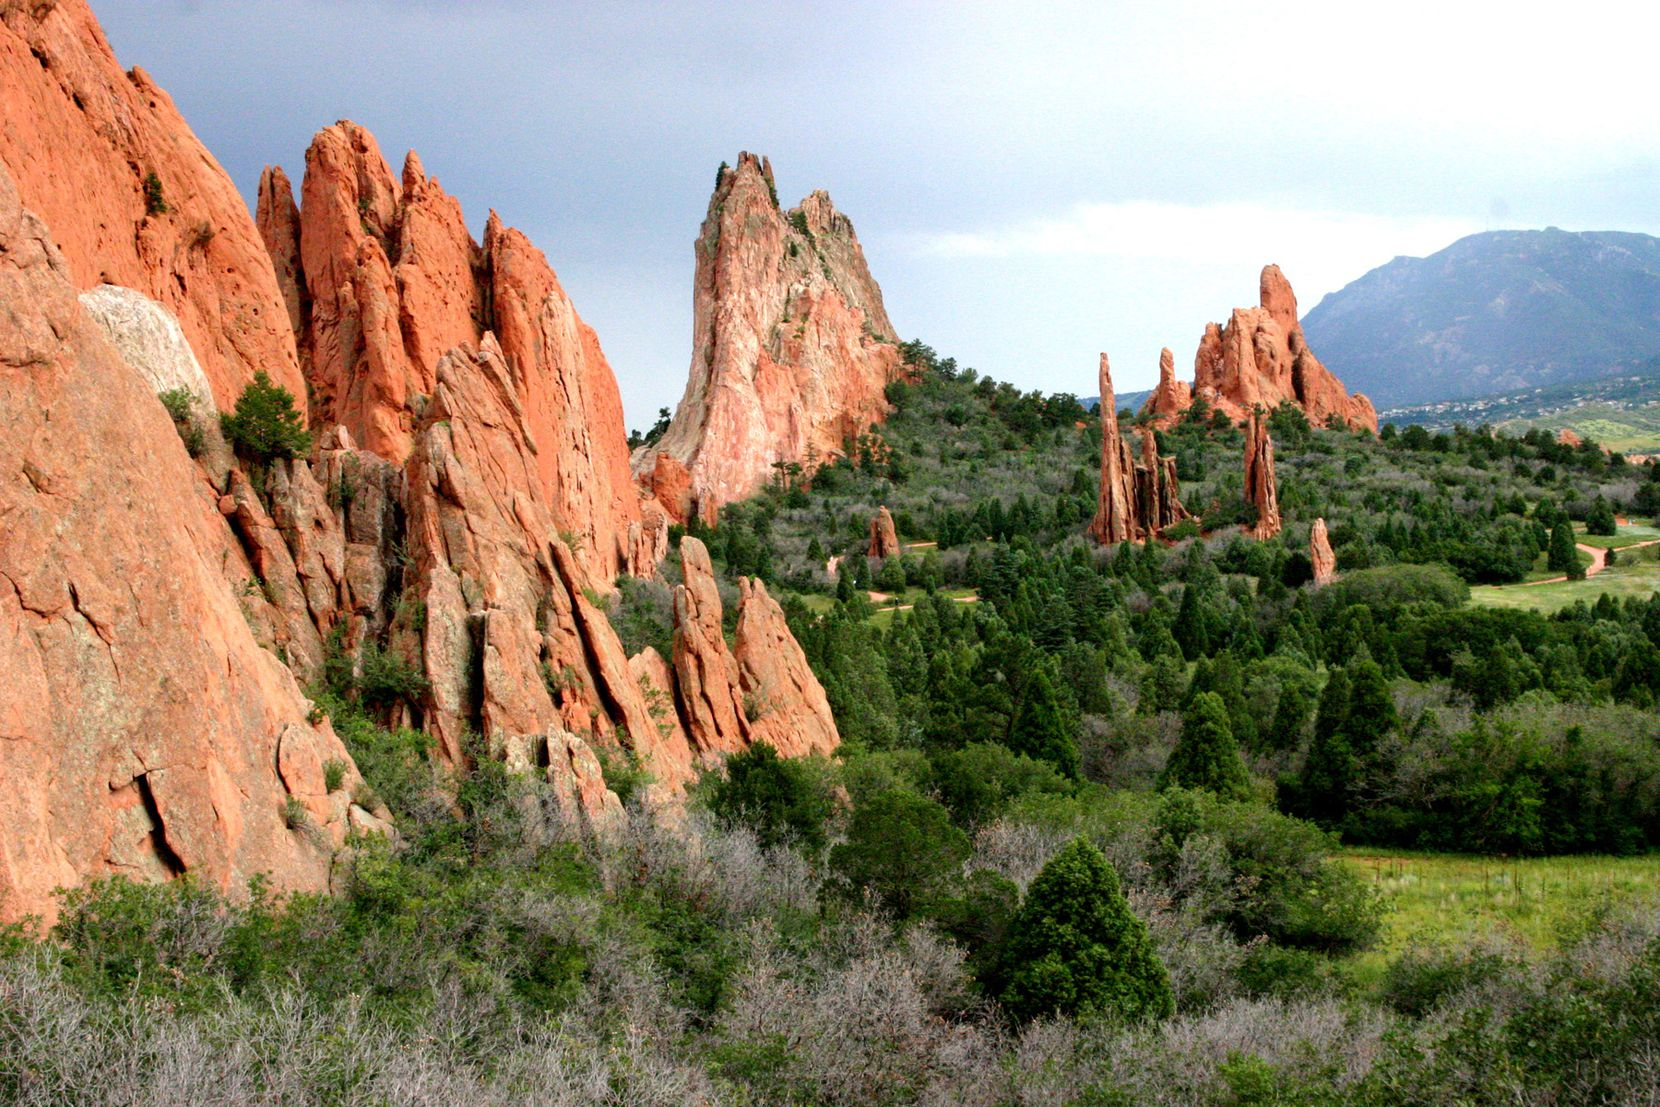 The unique rock formations of the Garden of the Gods are a short drive from Manitou Springs, Colo.